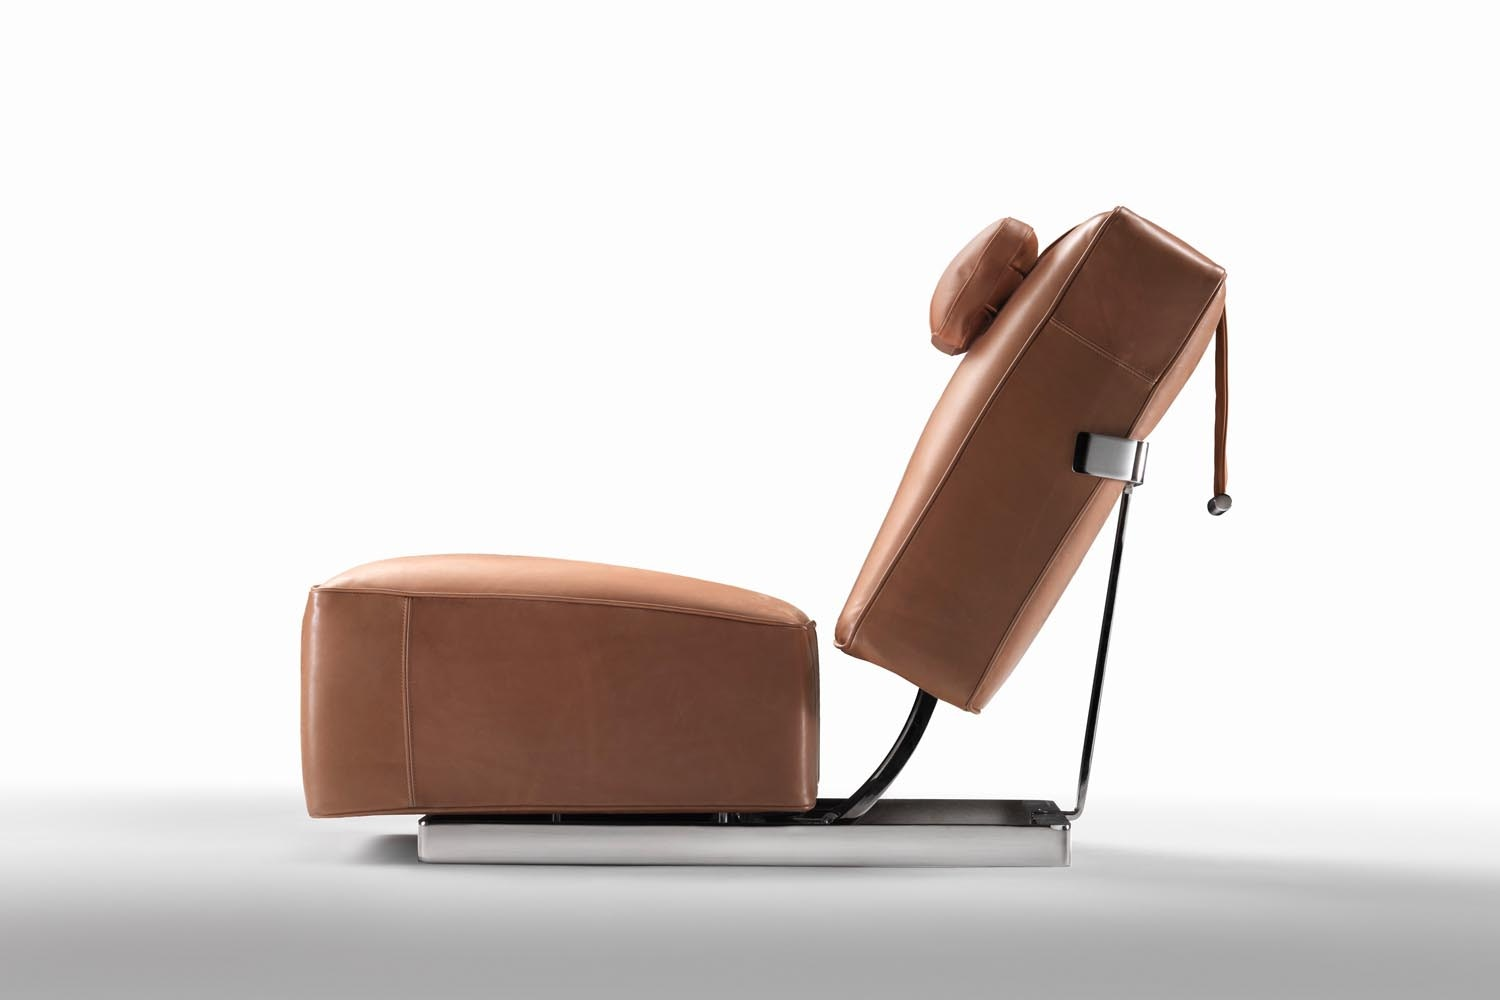 1A.B.C.D. by Antonio Citterio for Flexform